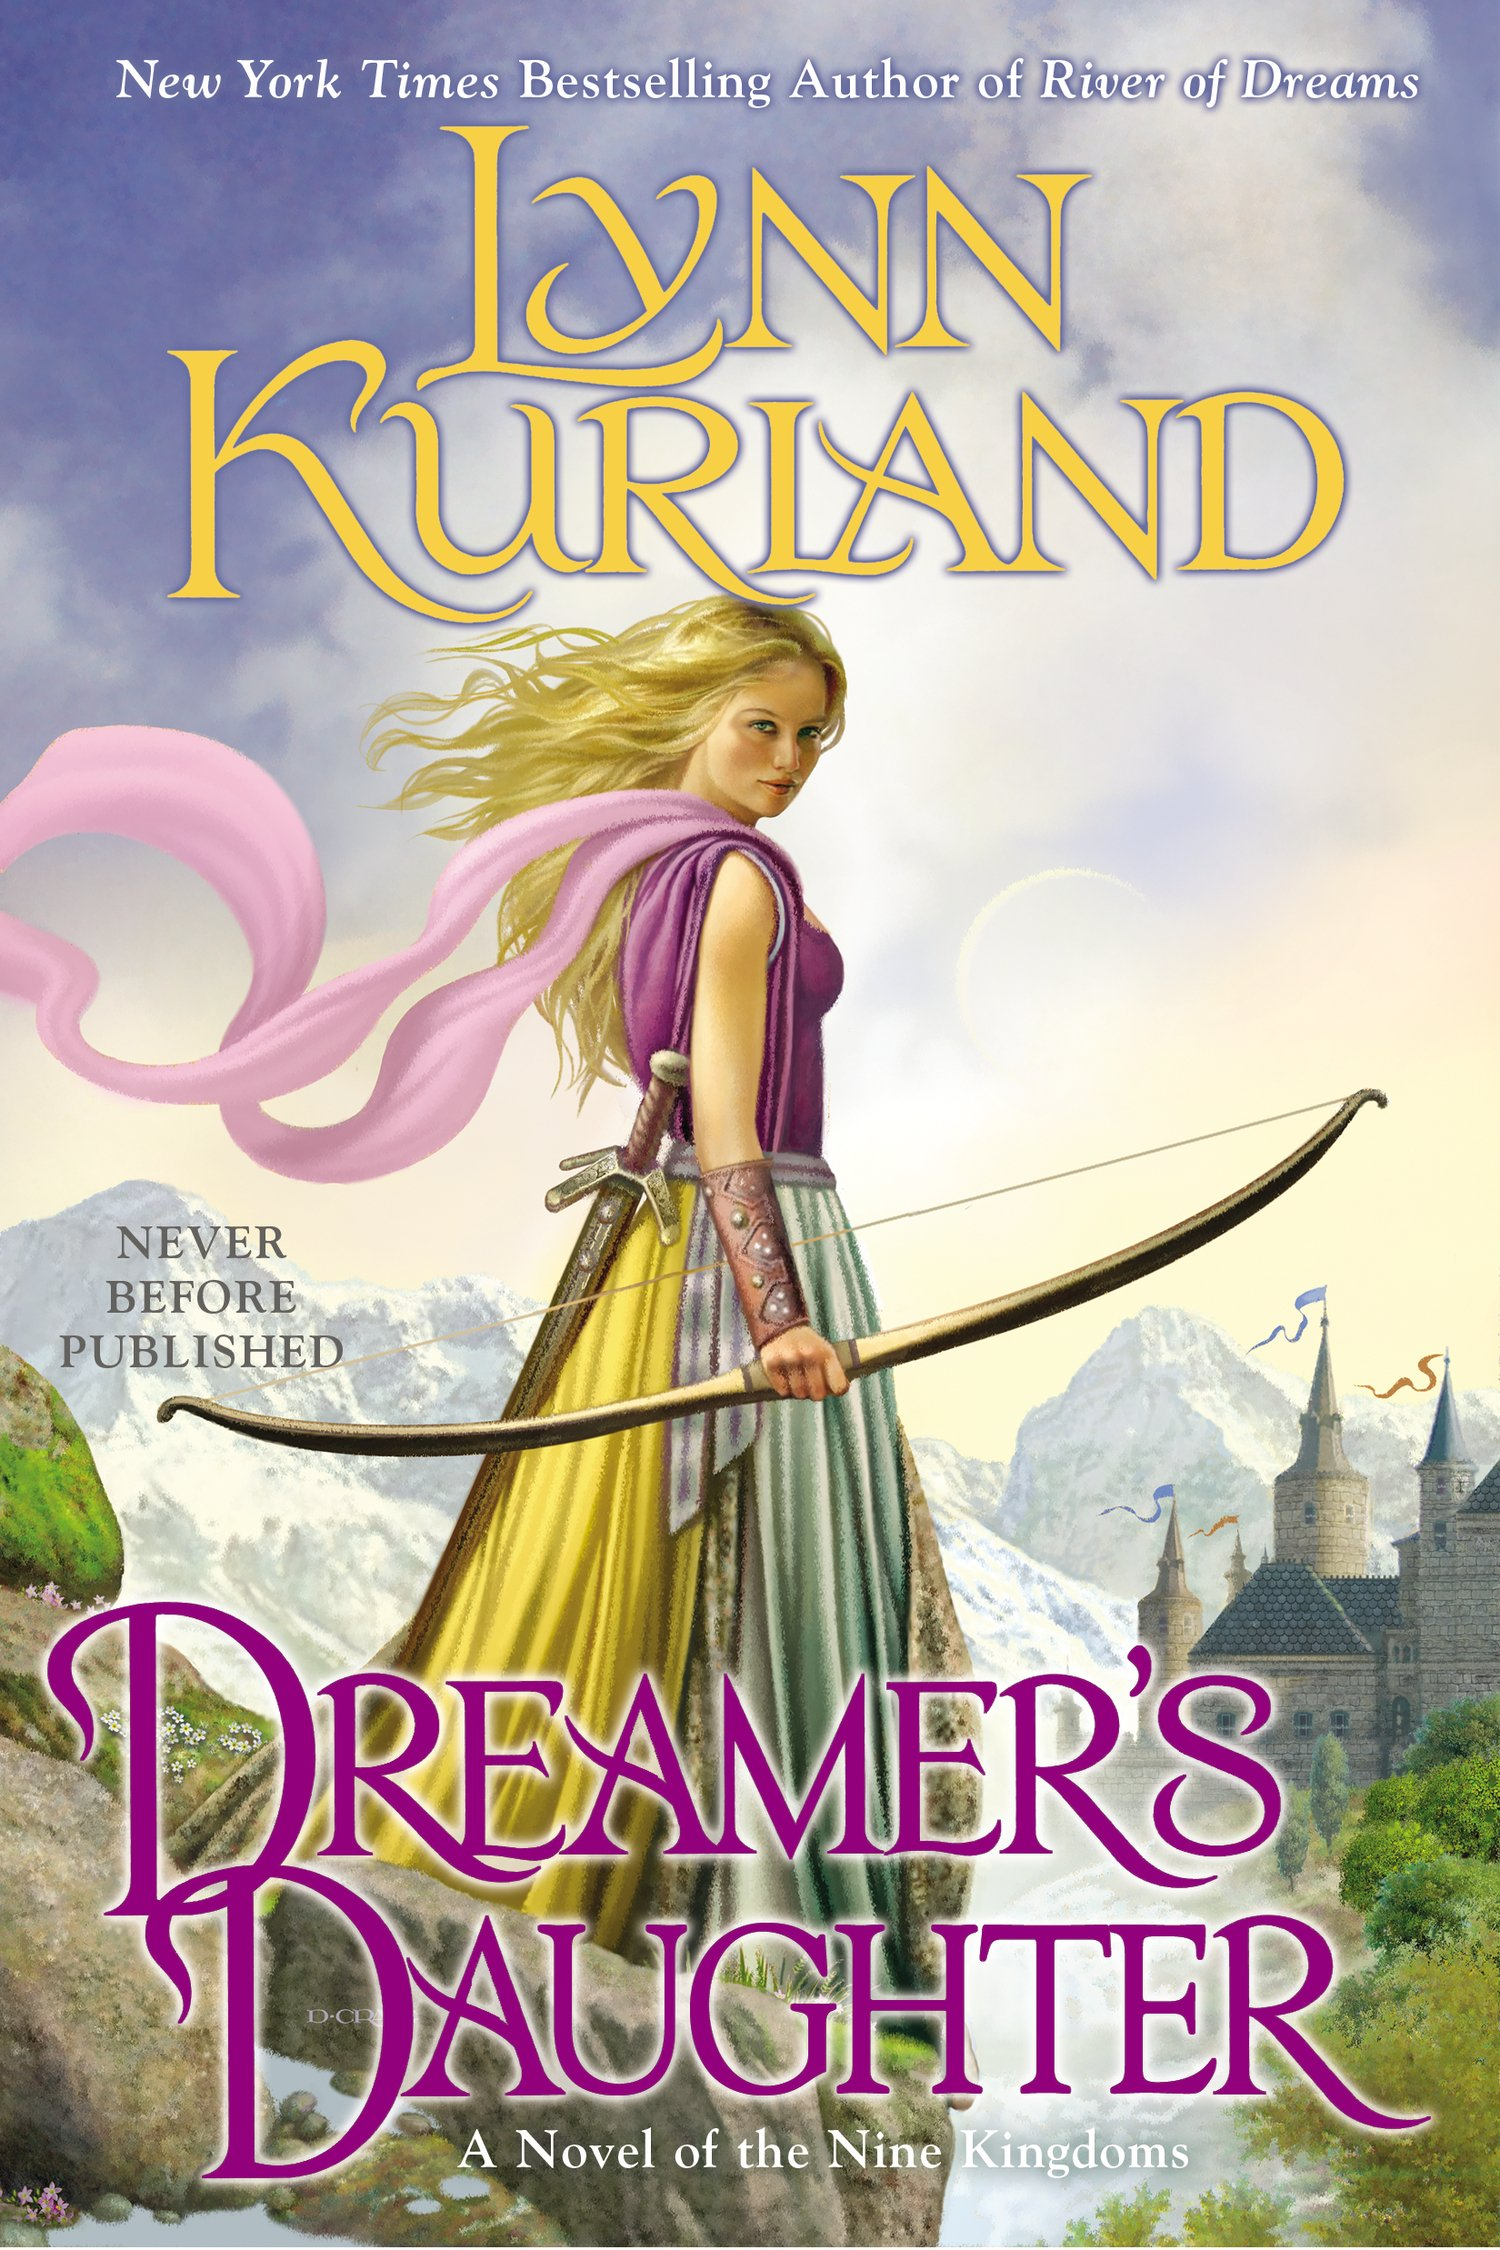 http://www.amazon.com/Dreamers-Daughter-Novel-Nine-Kingdoms/dp/0425262847